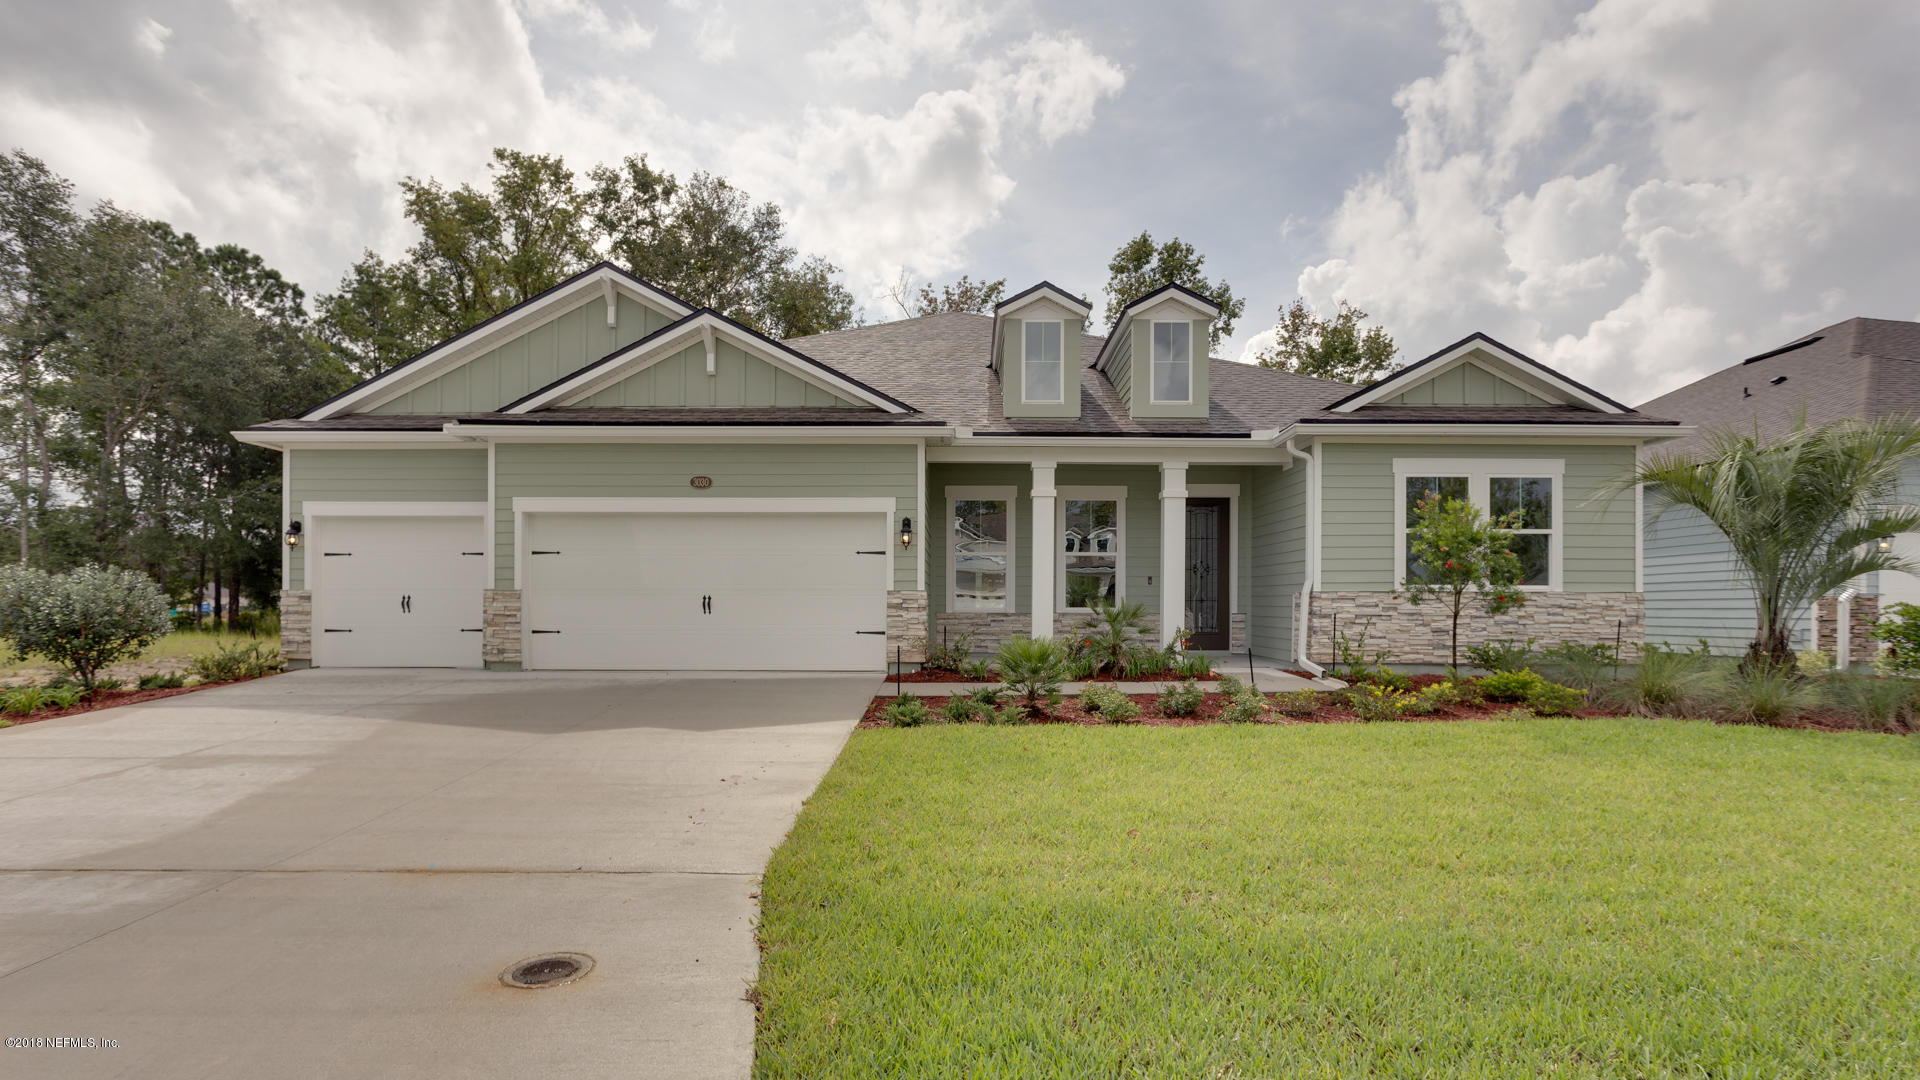 3030 FREE BIRD, GREEN COVE SPRINGS, FLORIDA 32043, 4 Bedrooms Bedrooms, ,3 BathroomsBathrooms,Residential - single family,For sale,FREE BIRD,911984